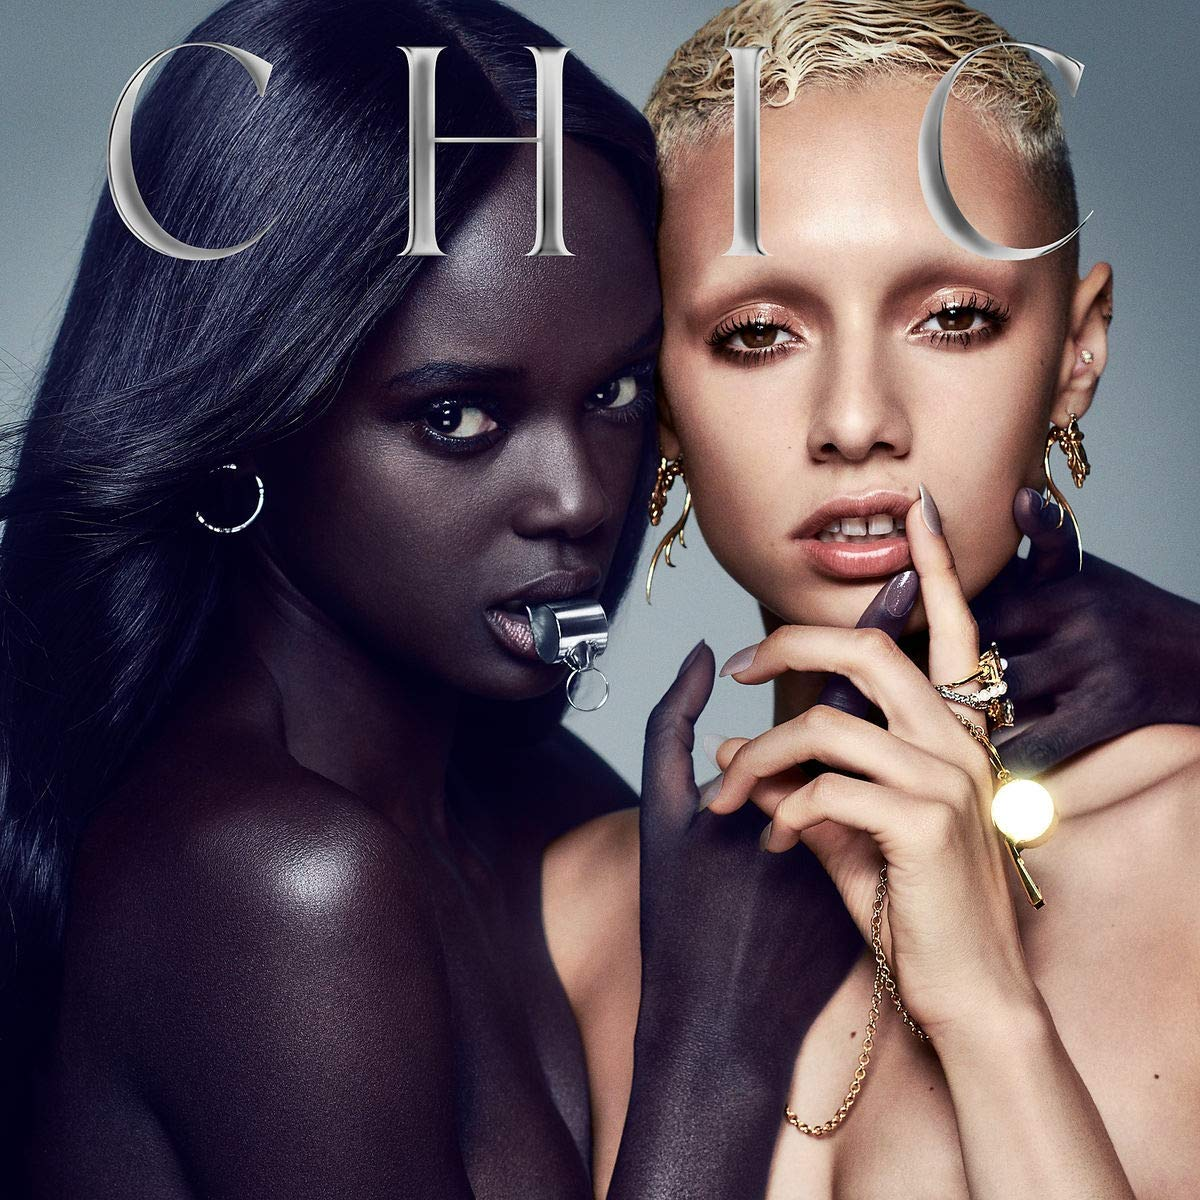 Nile Rodgers & Chic - It's About Time [Import LP]